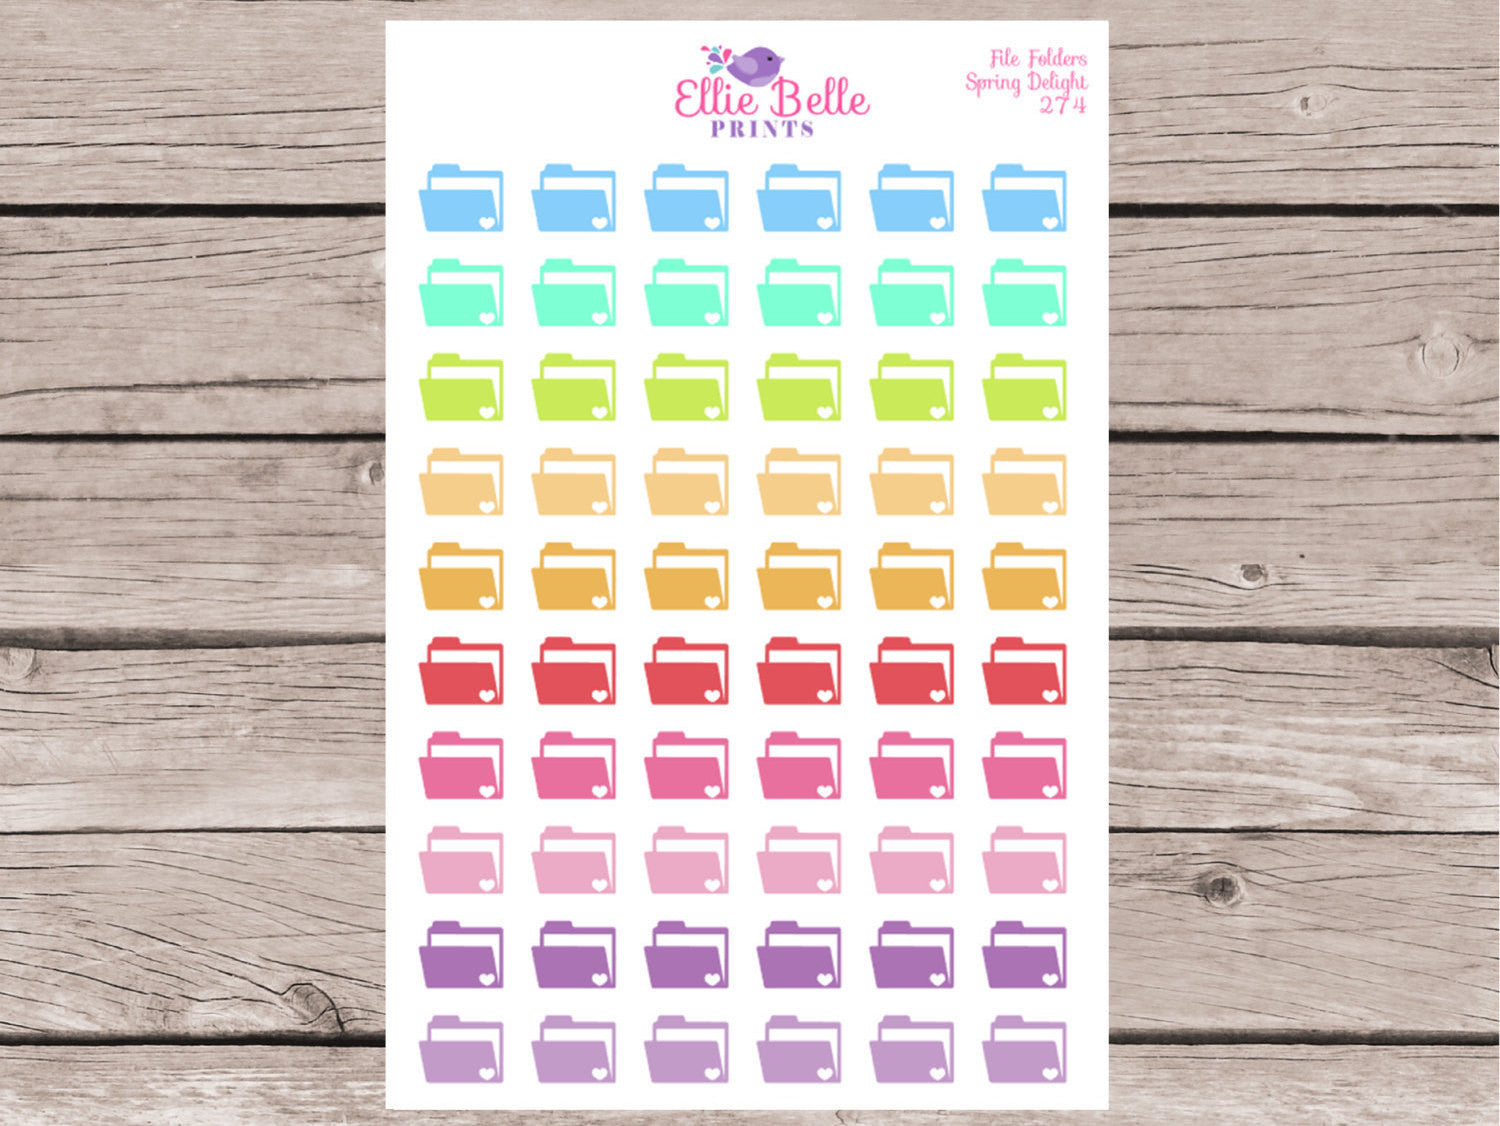 File Folder Stickers [274]